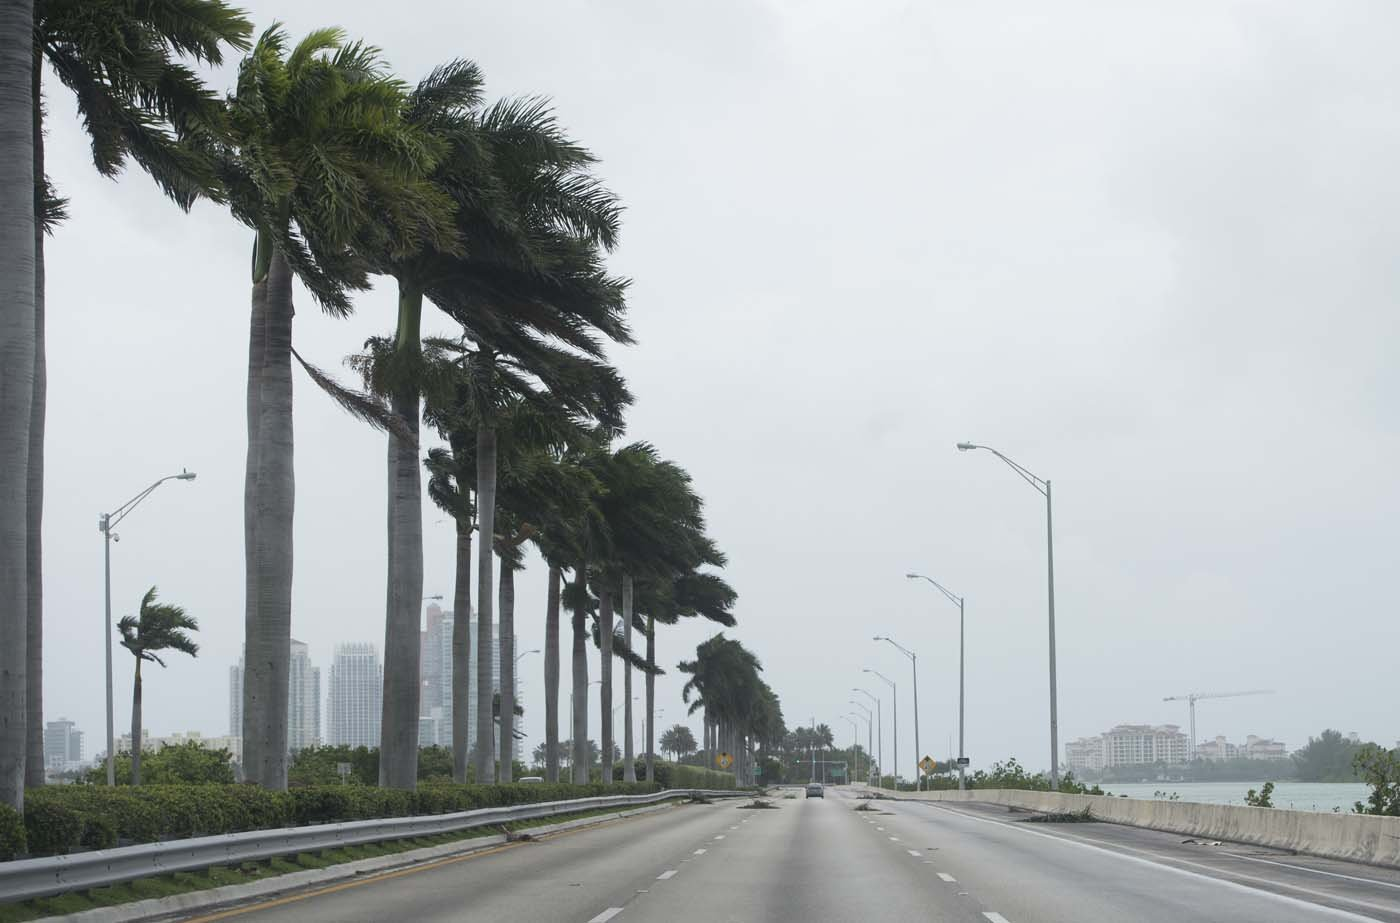 A main street leading to Miami Beach is nearly deserted as outer bands of Hurricane Irma arrive in Miami Beach, Florida, September 9, 2017. Hurricane Irma weakened slightly to a Category 4 storm early Saturday, according to the US National Hurricane Center, after making landfall hours earlier in Cuba with maximum-strength Category 5 winds. / AFP PHOTO / SAUL LOEB